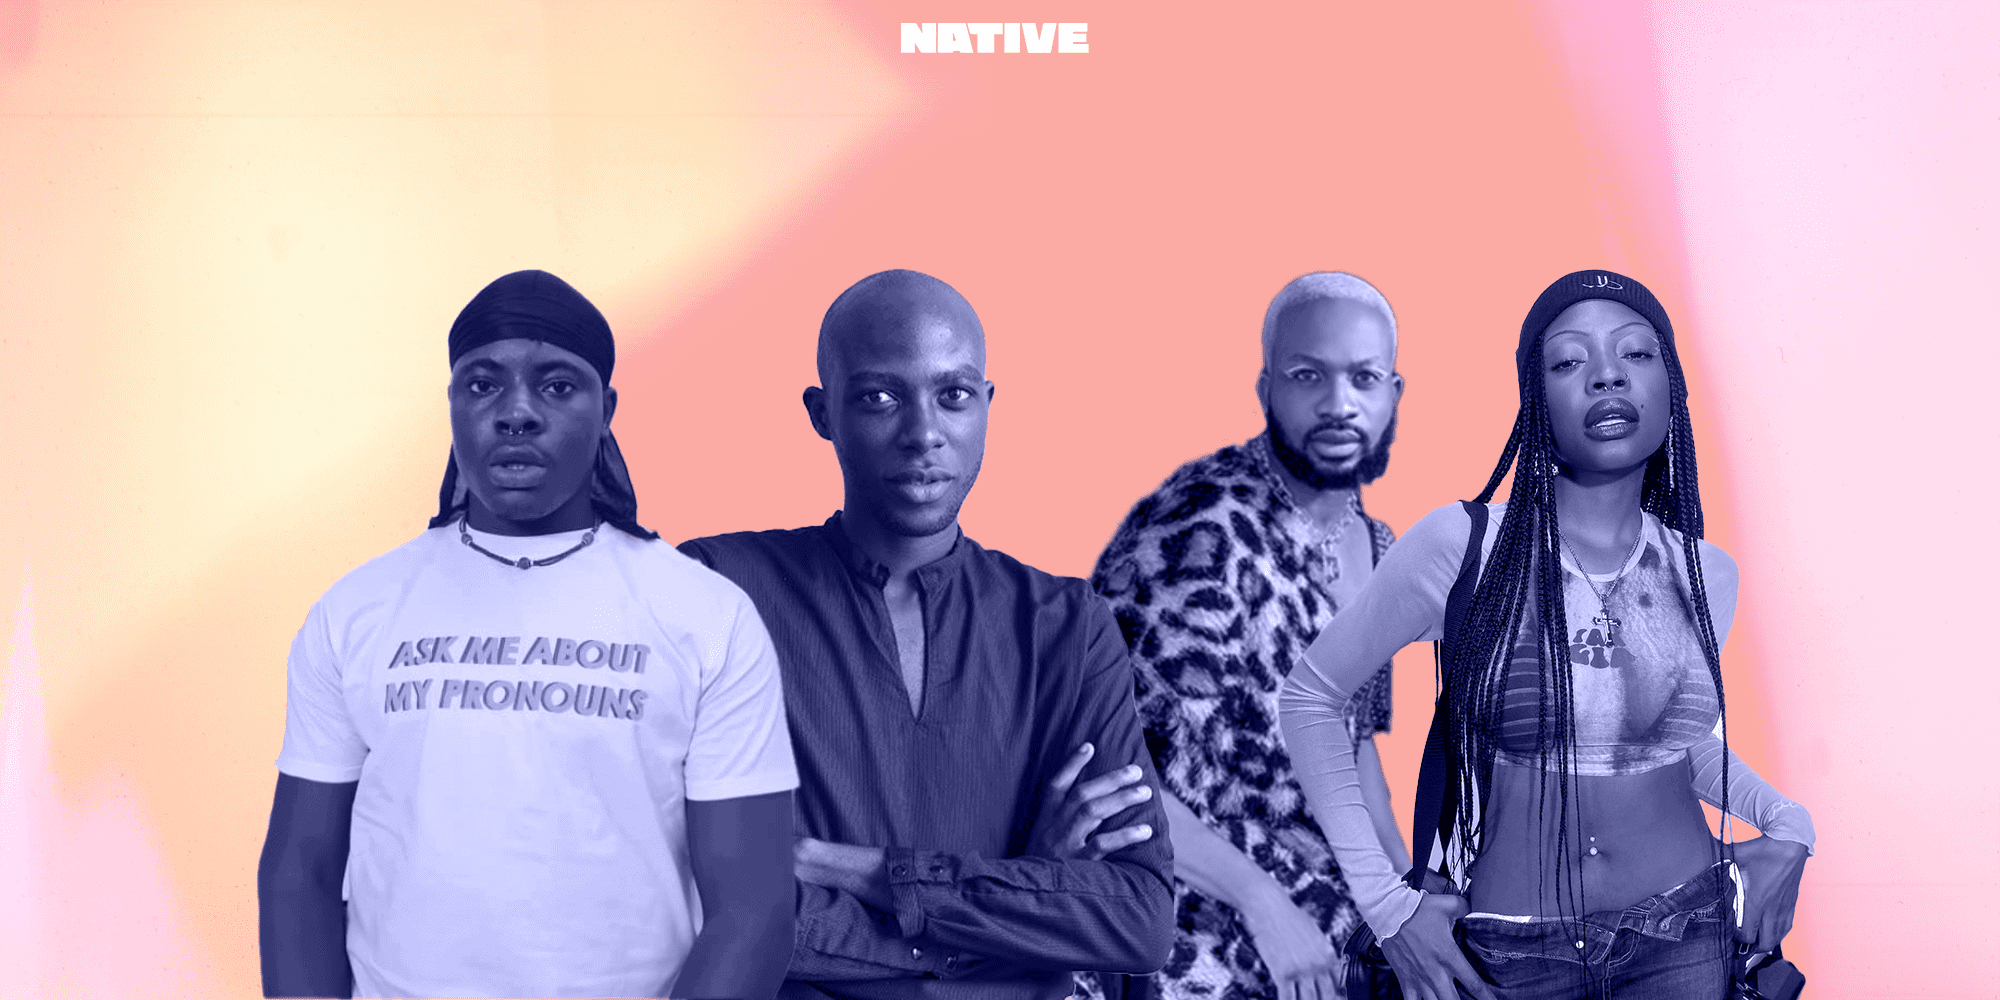 Queer African Designers Are Utilising Fashion As A Form Of Activism